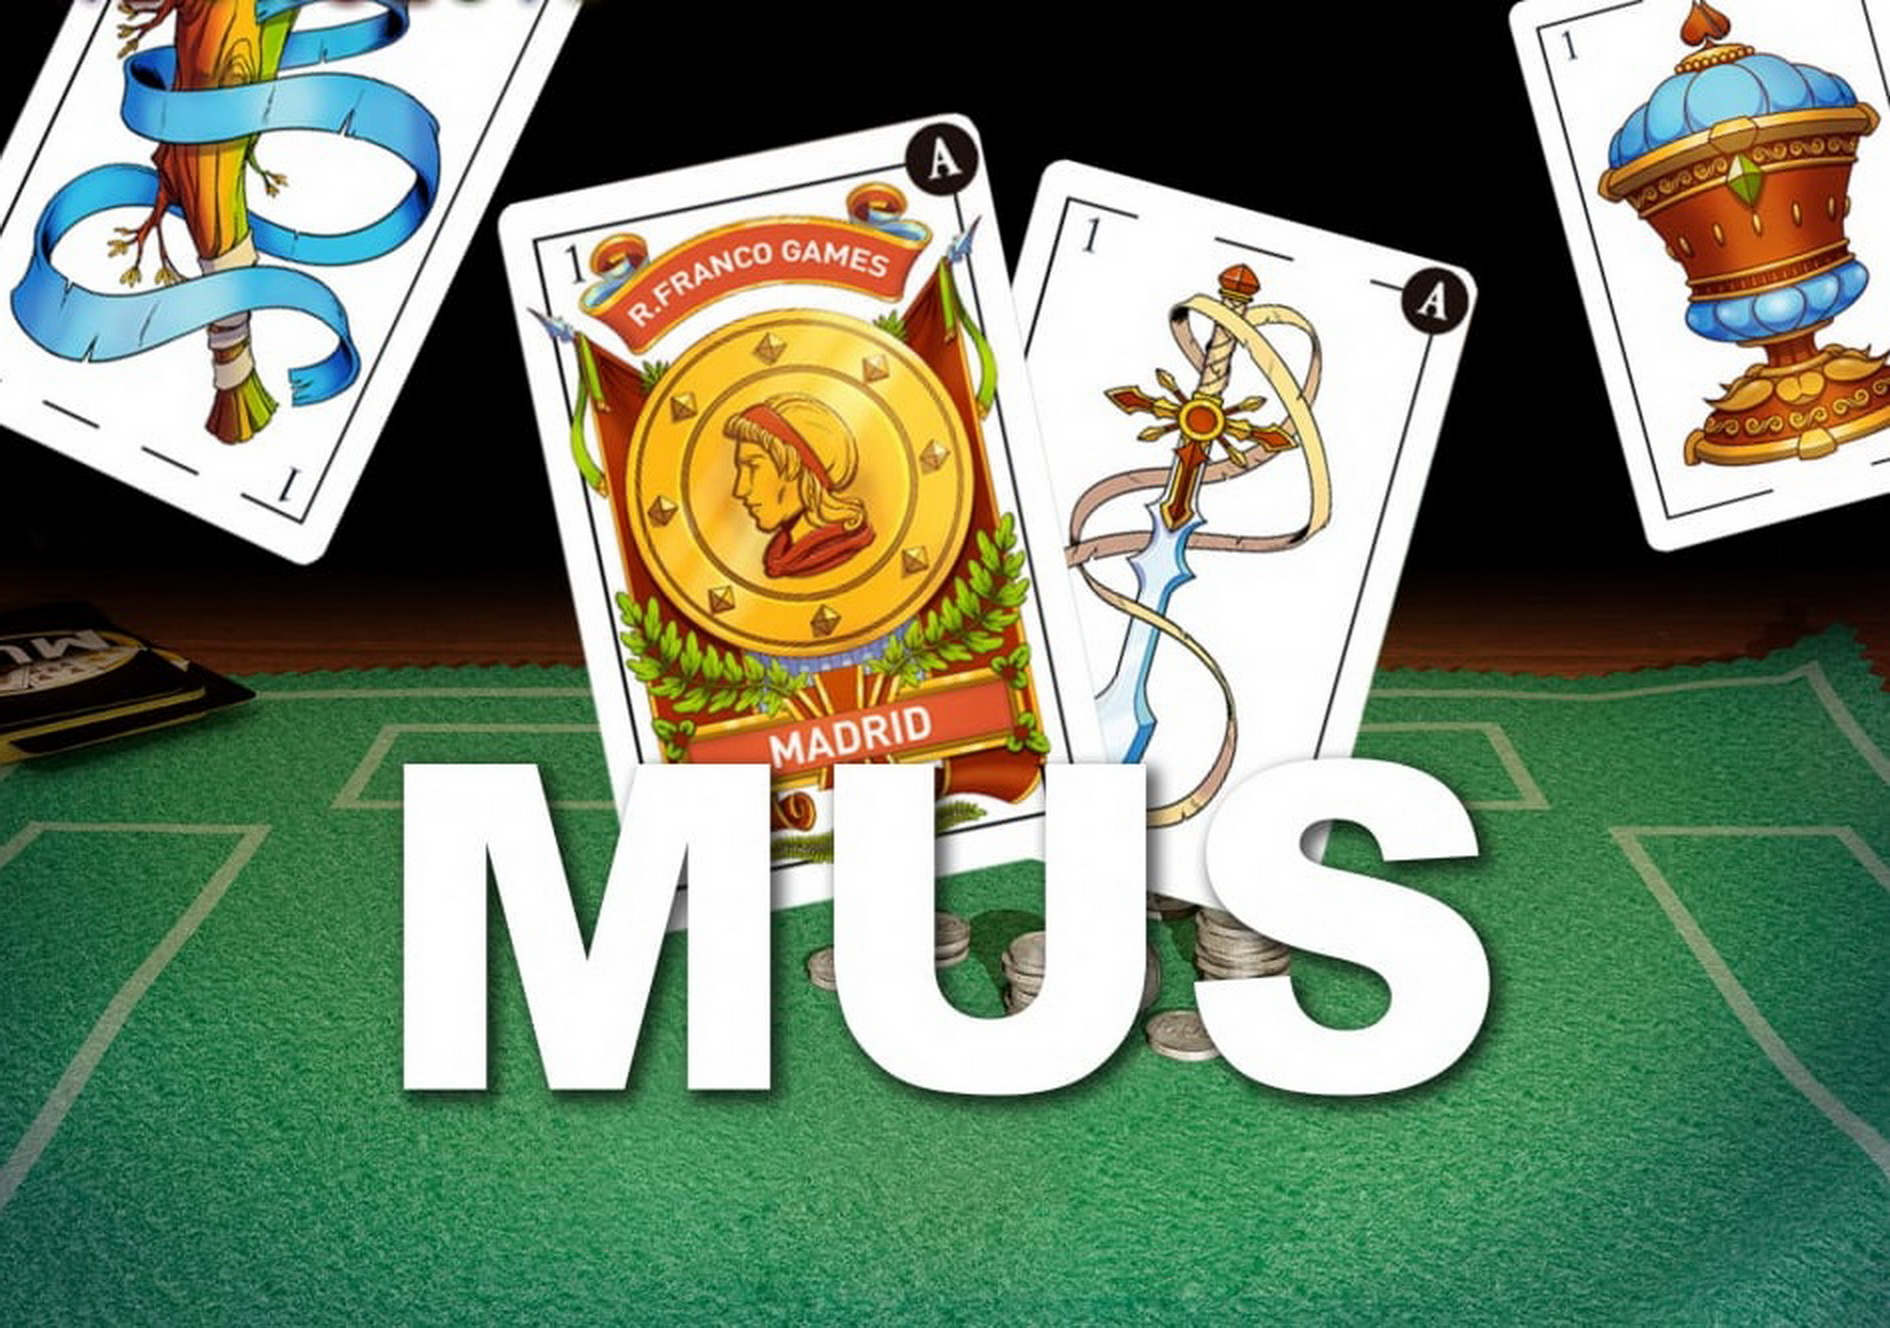 Mus (R. Franco) Online Slot Demo Game by RFranco Group